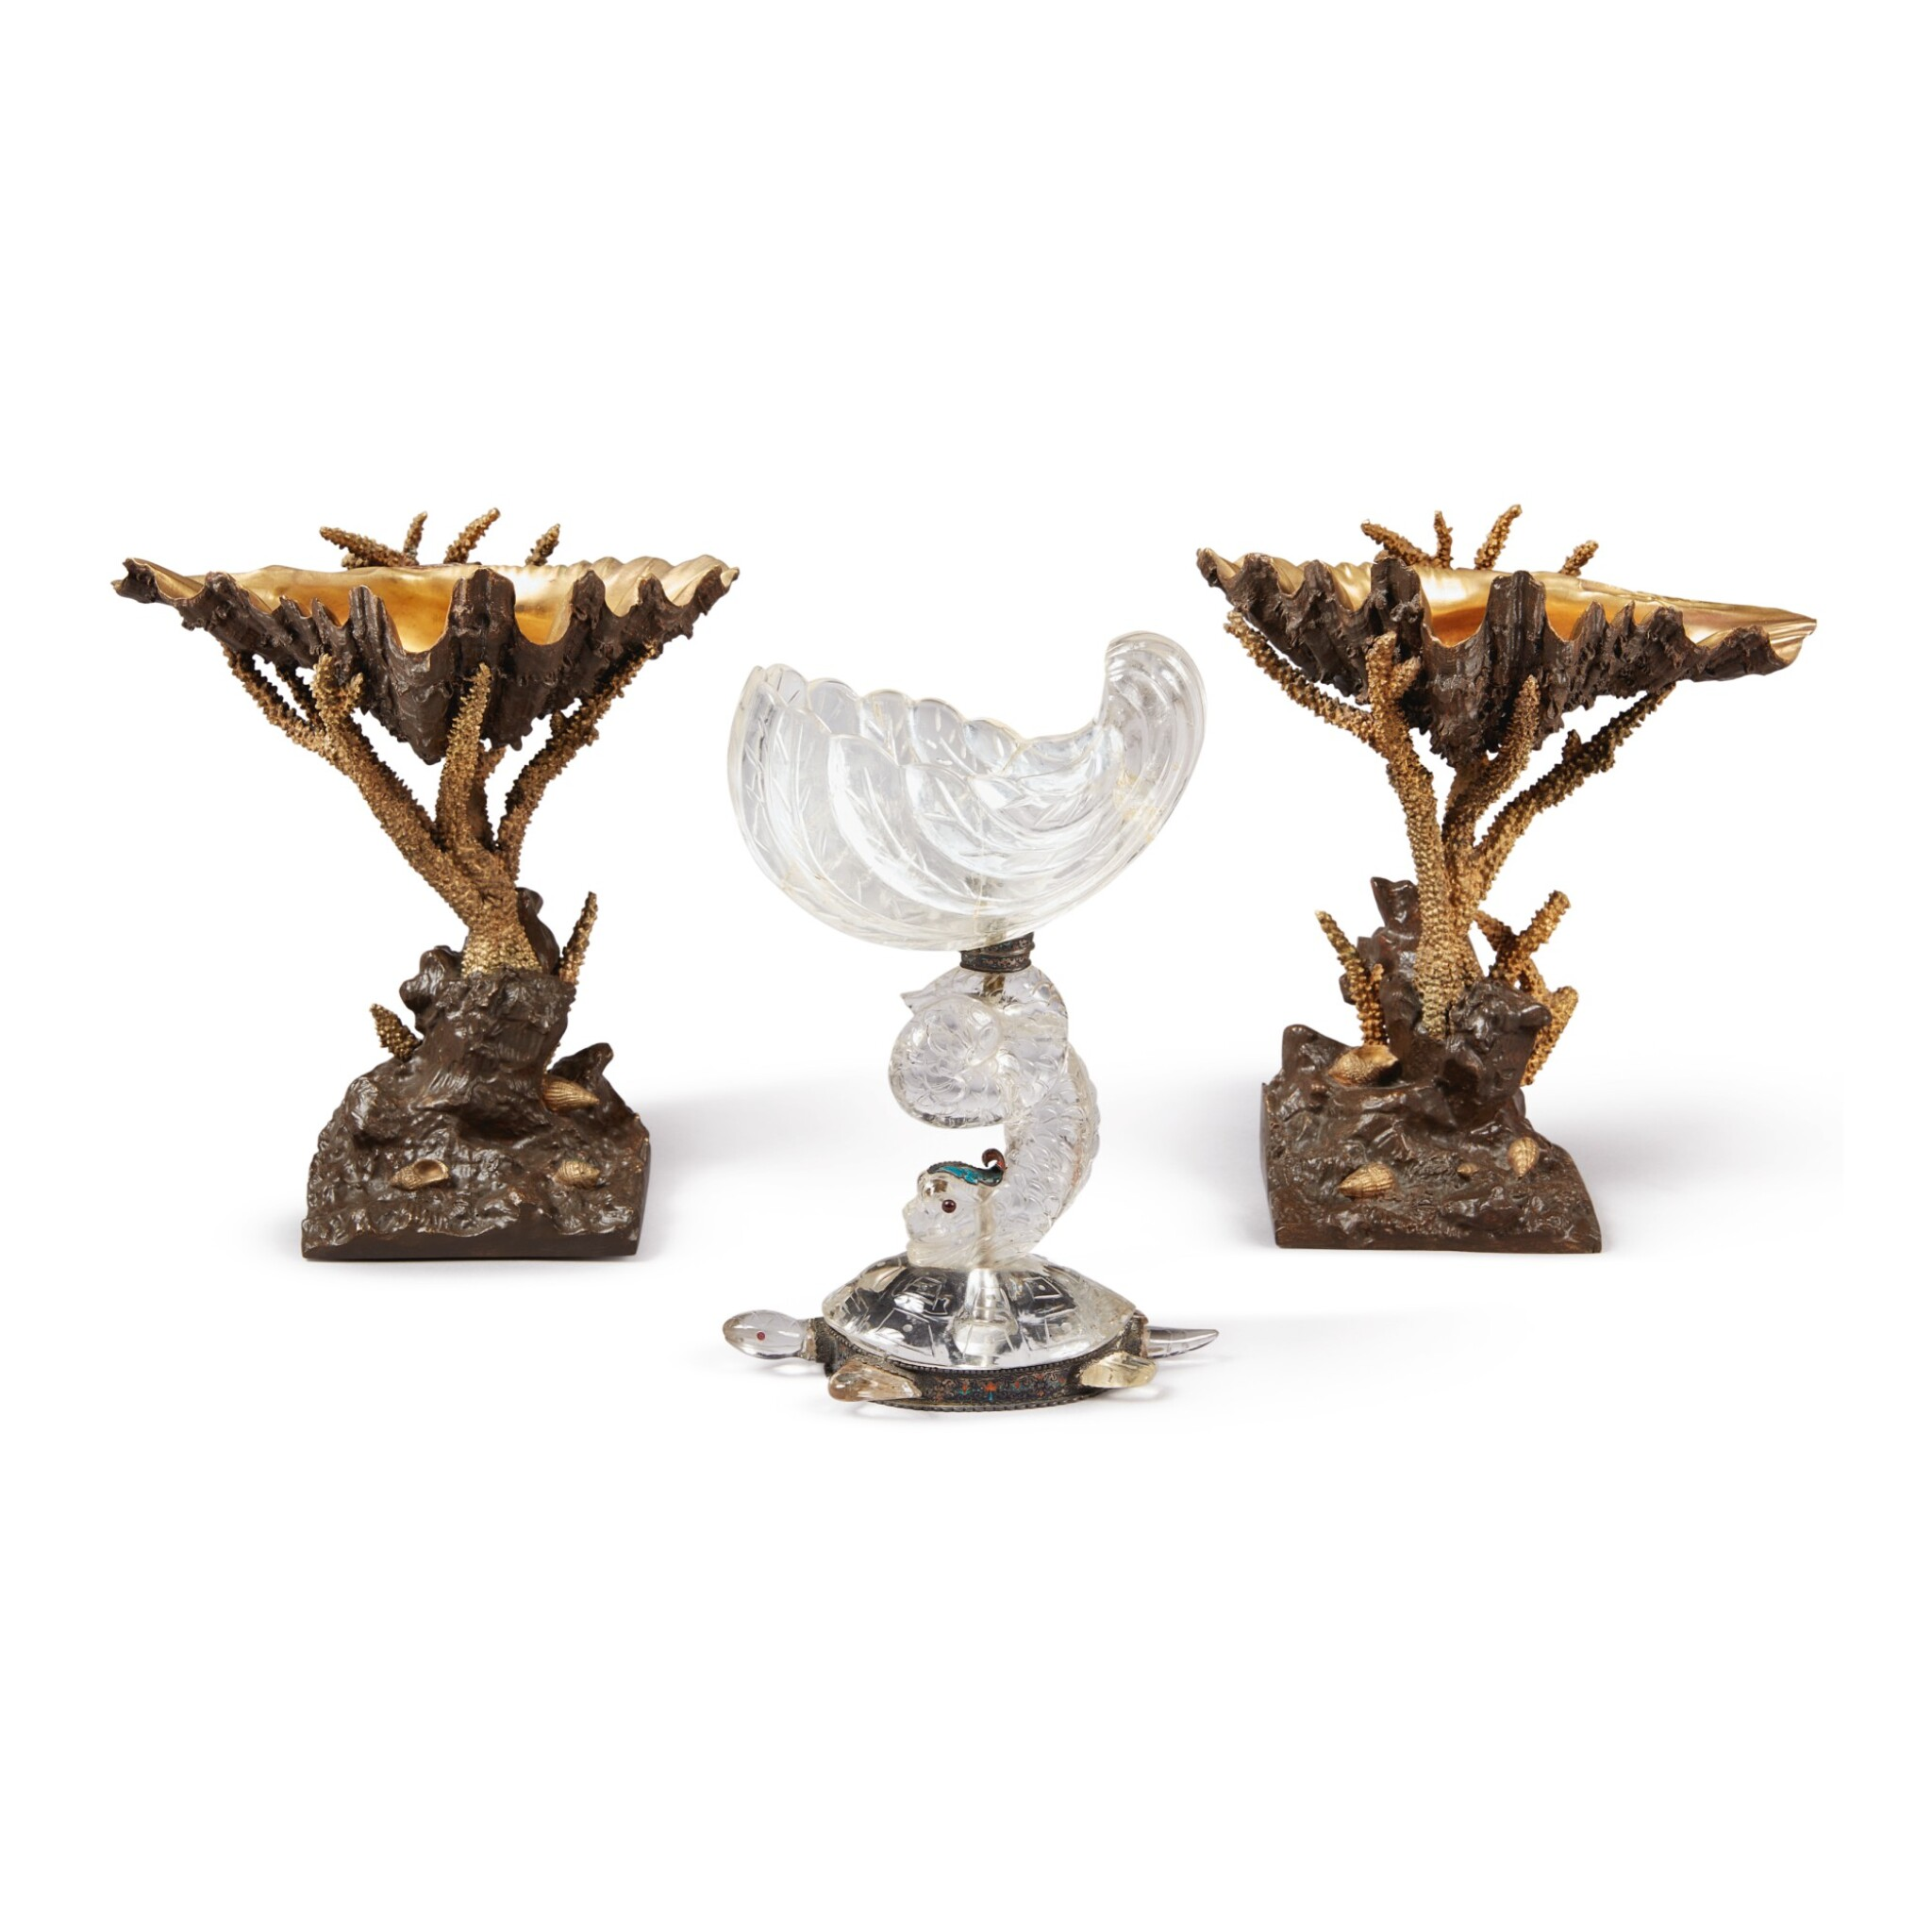 A PAIR OF SHELL AND CORAL FORM GILT AND PATINATED METAL SWEETMEAT DISHES, 20TH CENTURY, TOGETHER WITH A VIENNESE ROCK CRYSTAL AND ENAMEL RENAISSANCE REVIVAL SWEETMEAT DISH, CIRCA 1870